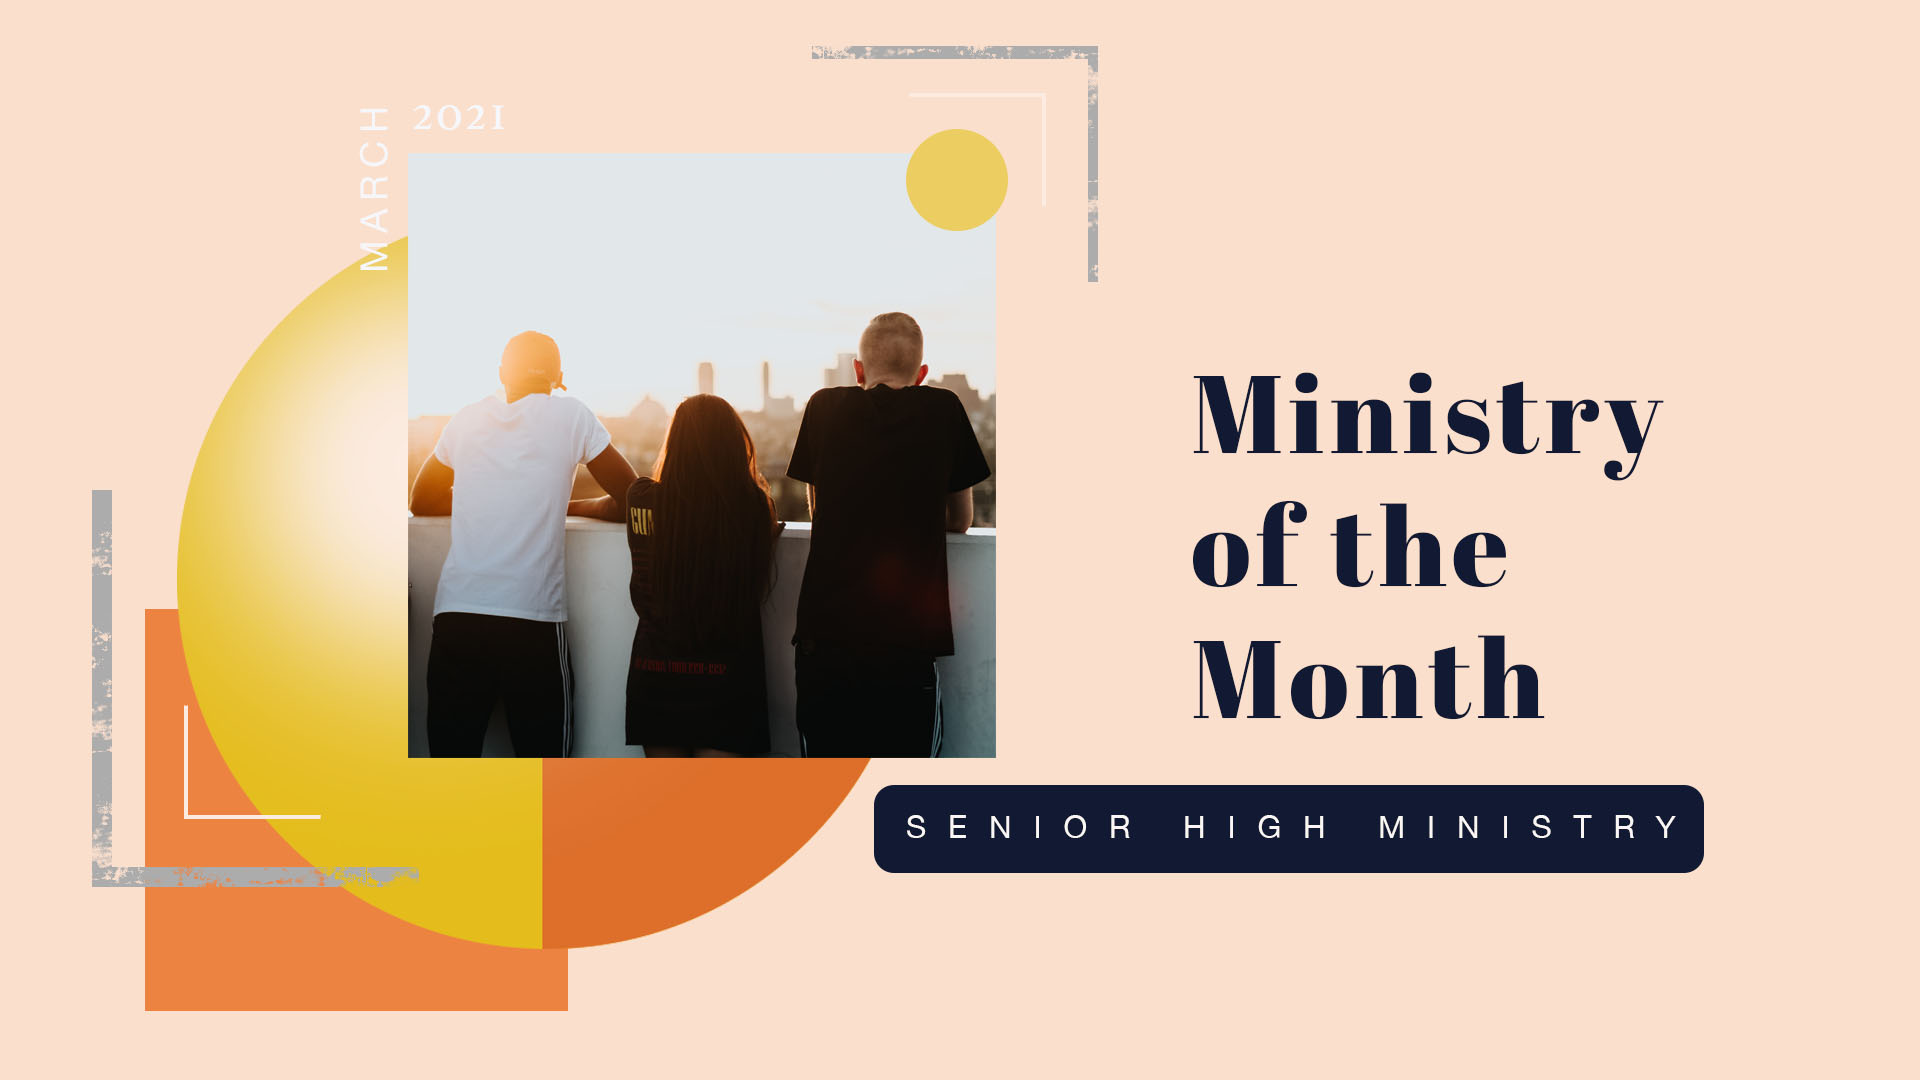 Ministry of the Month - Senior High Ministry